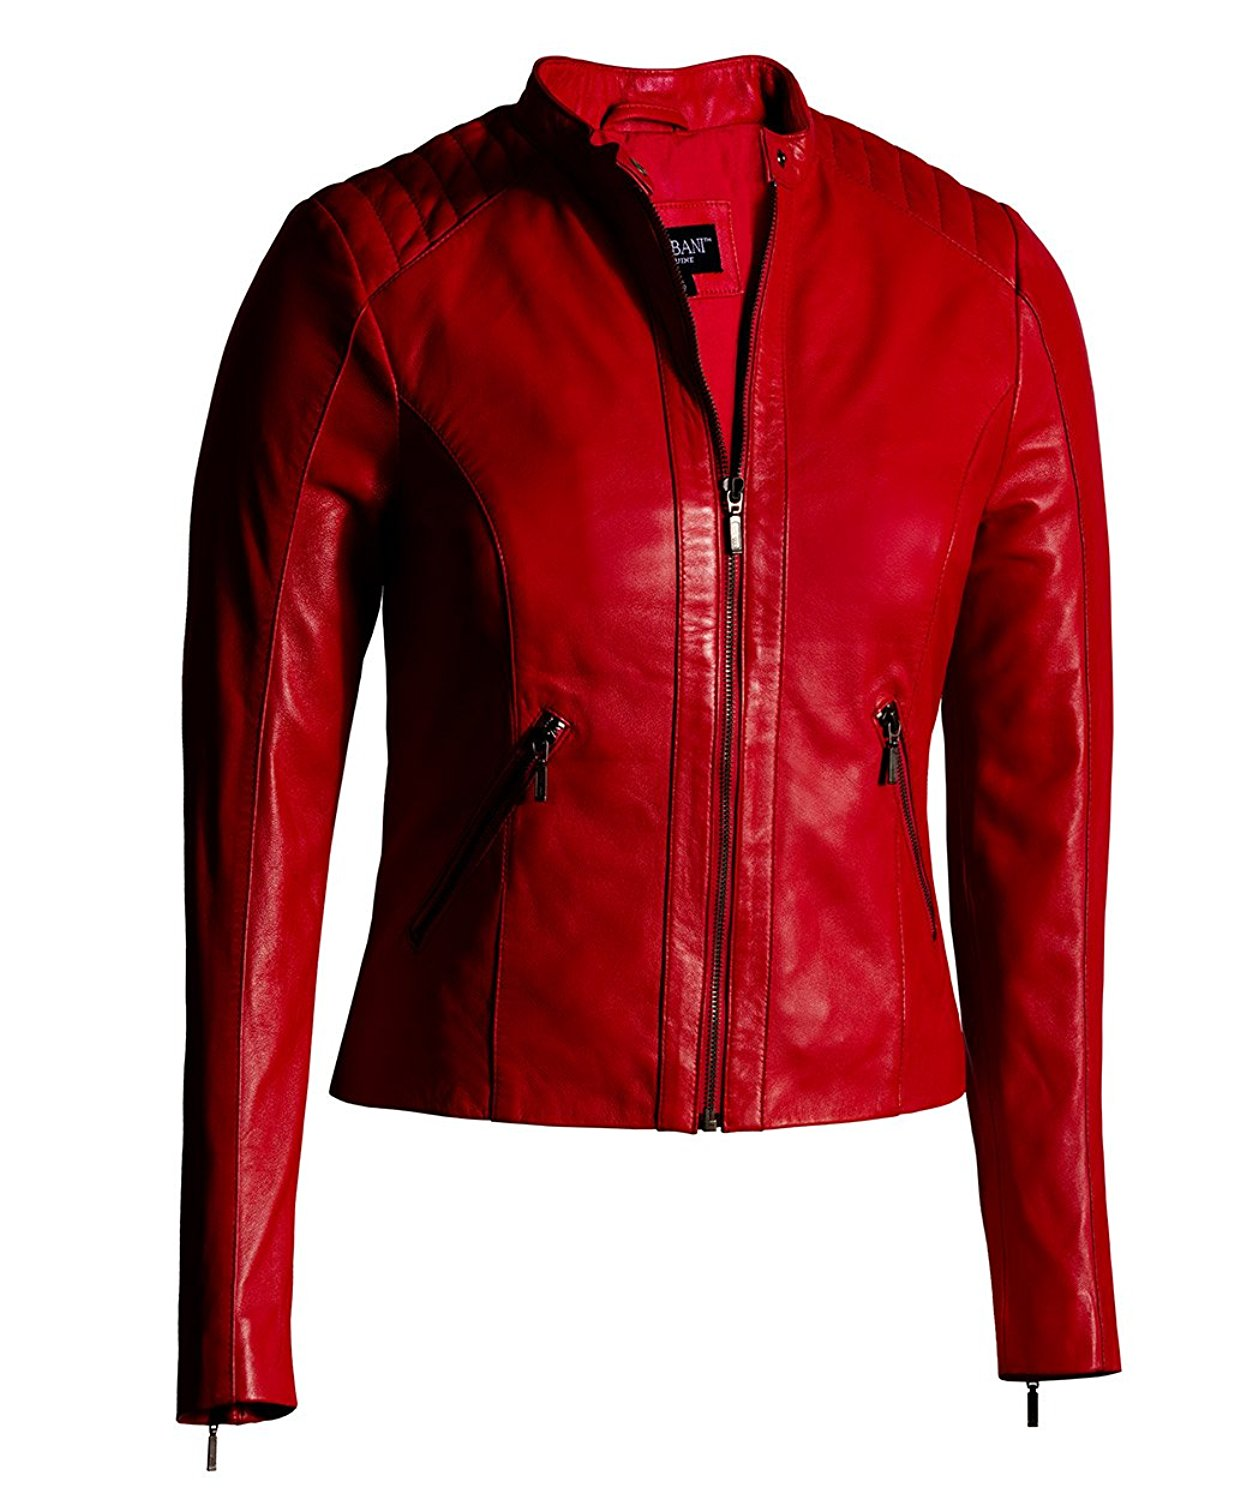 Red Leather Jacket for Women Moto Fashion – Genuine Leather Jacket (Small, Red)